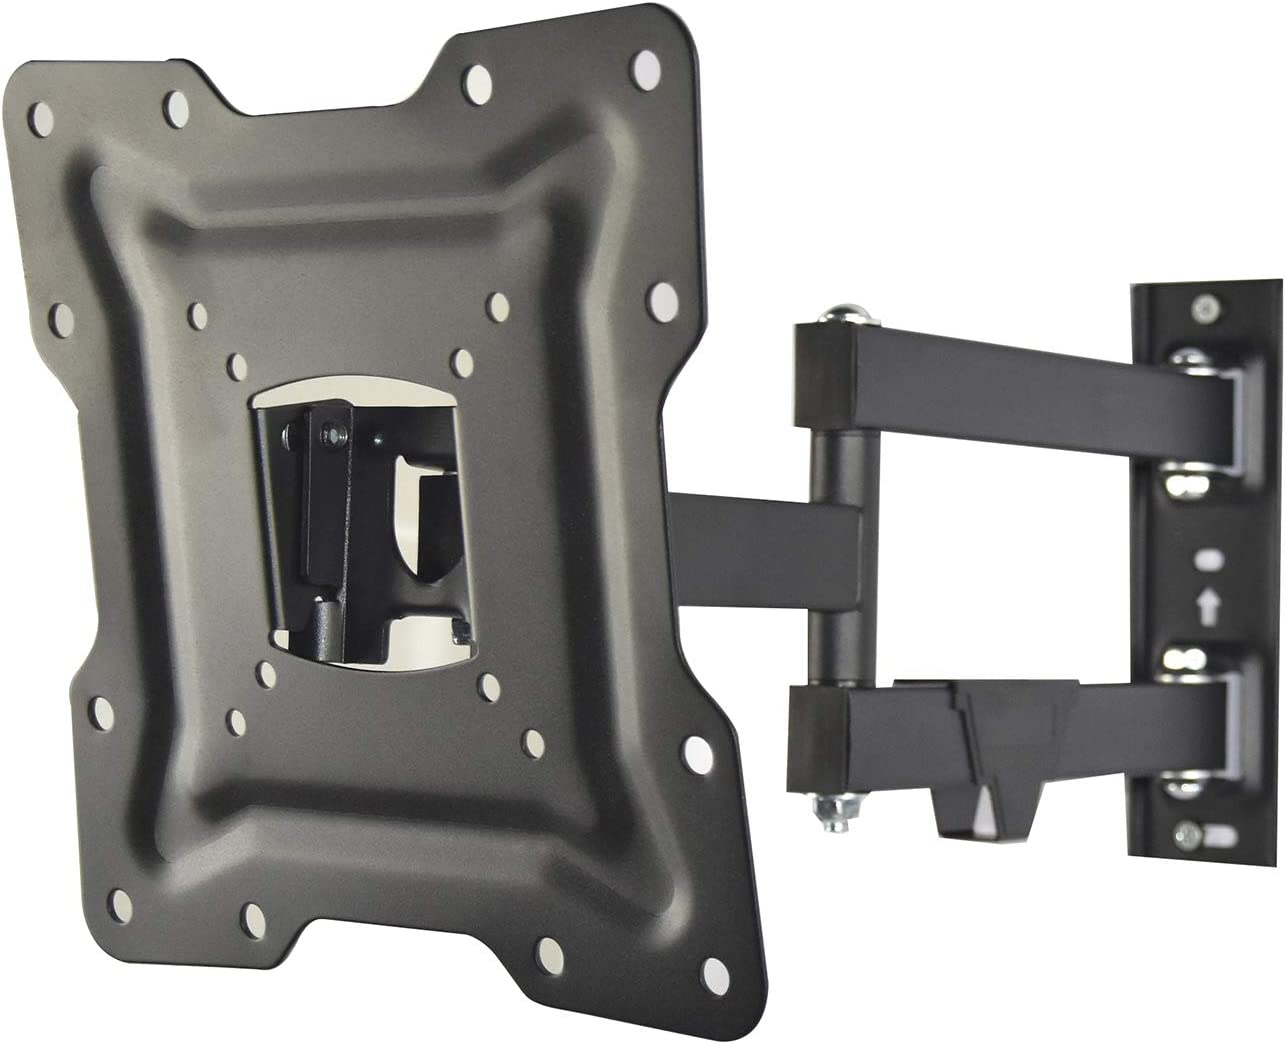 Heavy-Duty, Full Motion Articulating TV Wall Mount for 17-inch to 43-inch LED, LCD, Flat Screen TVs